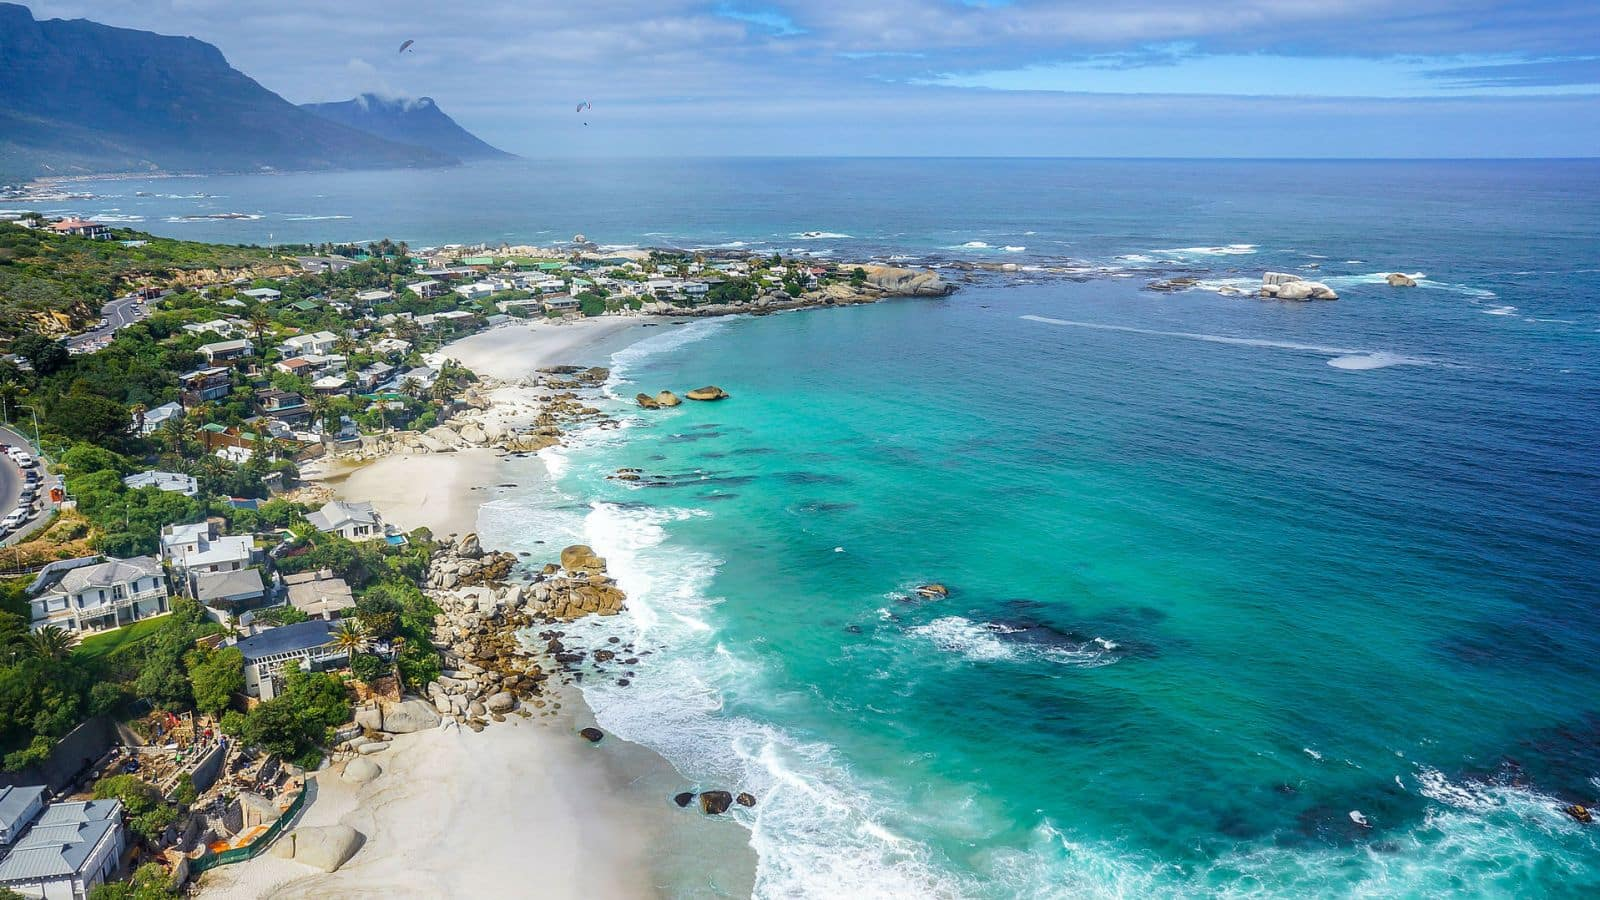 Cape Town's Atlantic Seaboard